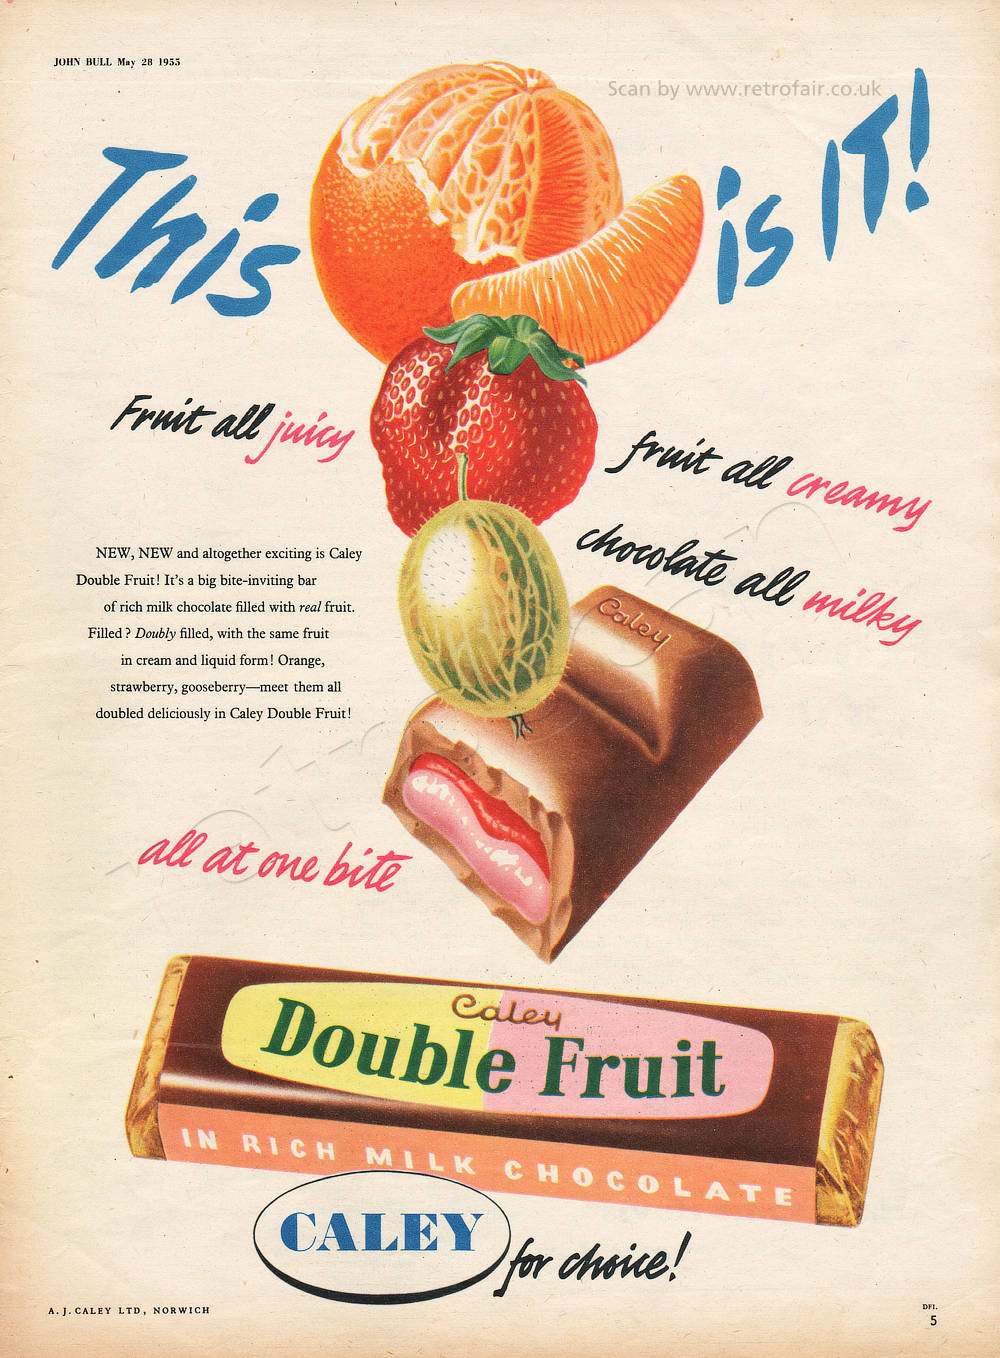 1955 Caley Double Fruit Bar - unframed vintage ad